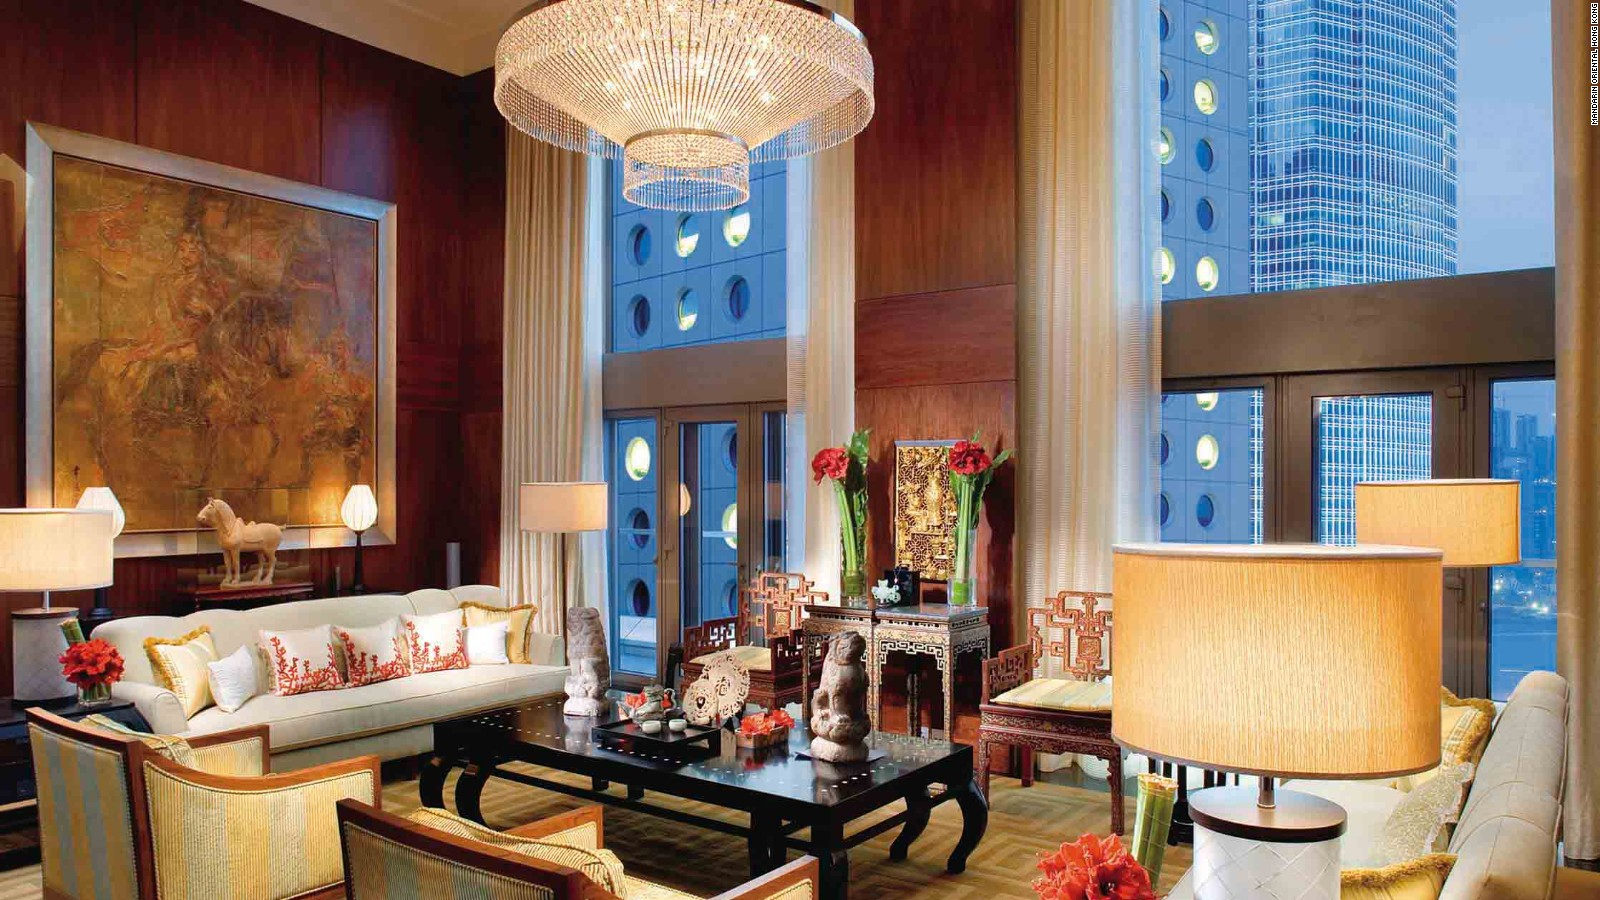 Hong Kong Luxury Suites Over The Top Hotel Opulence